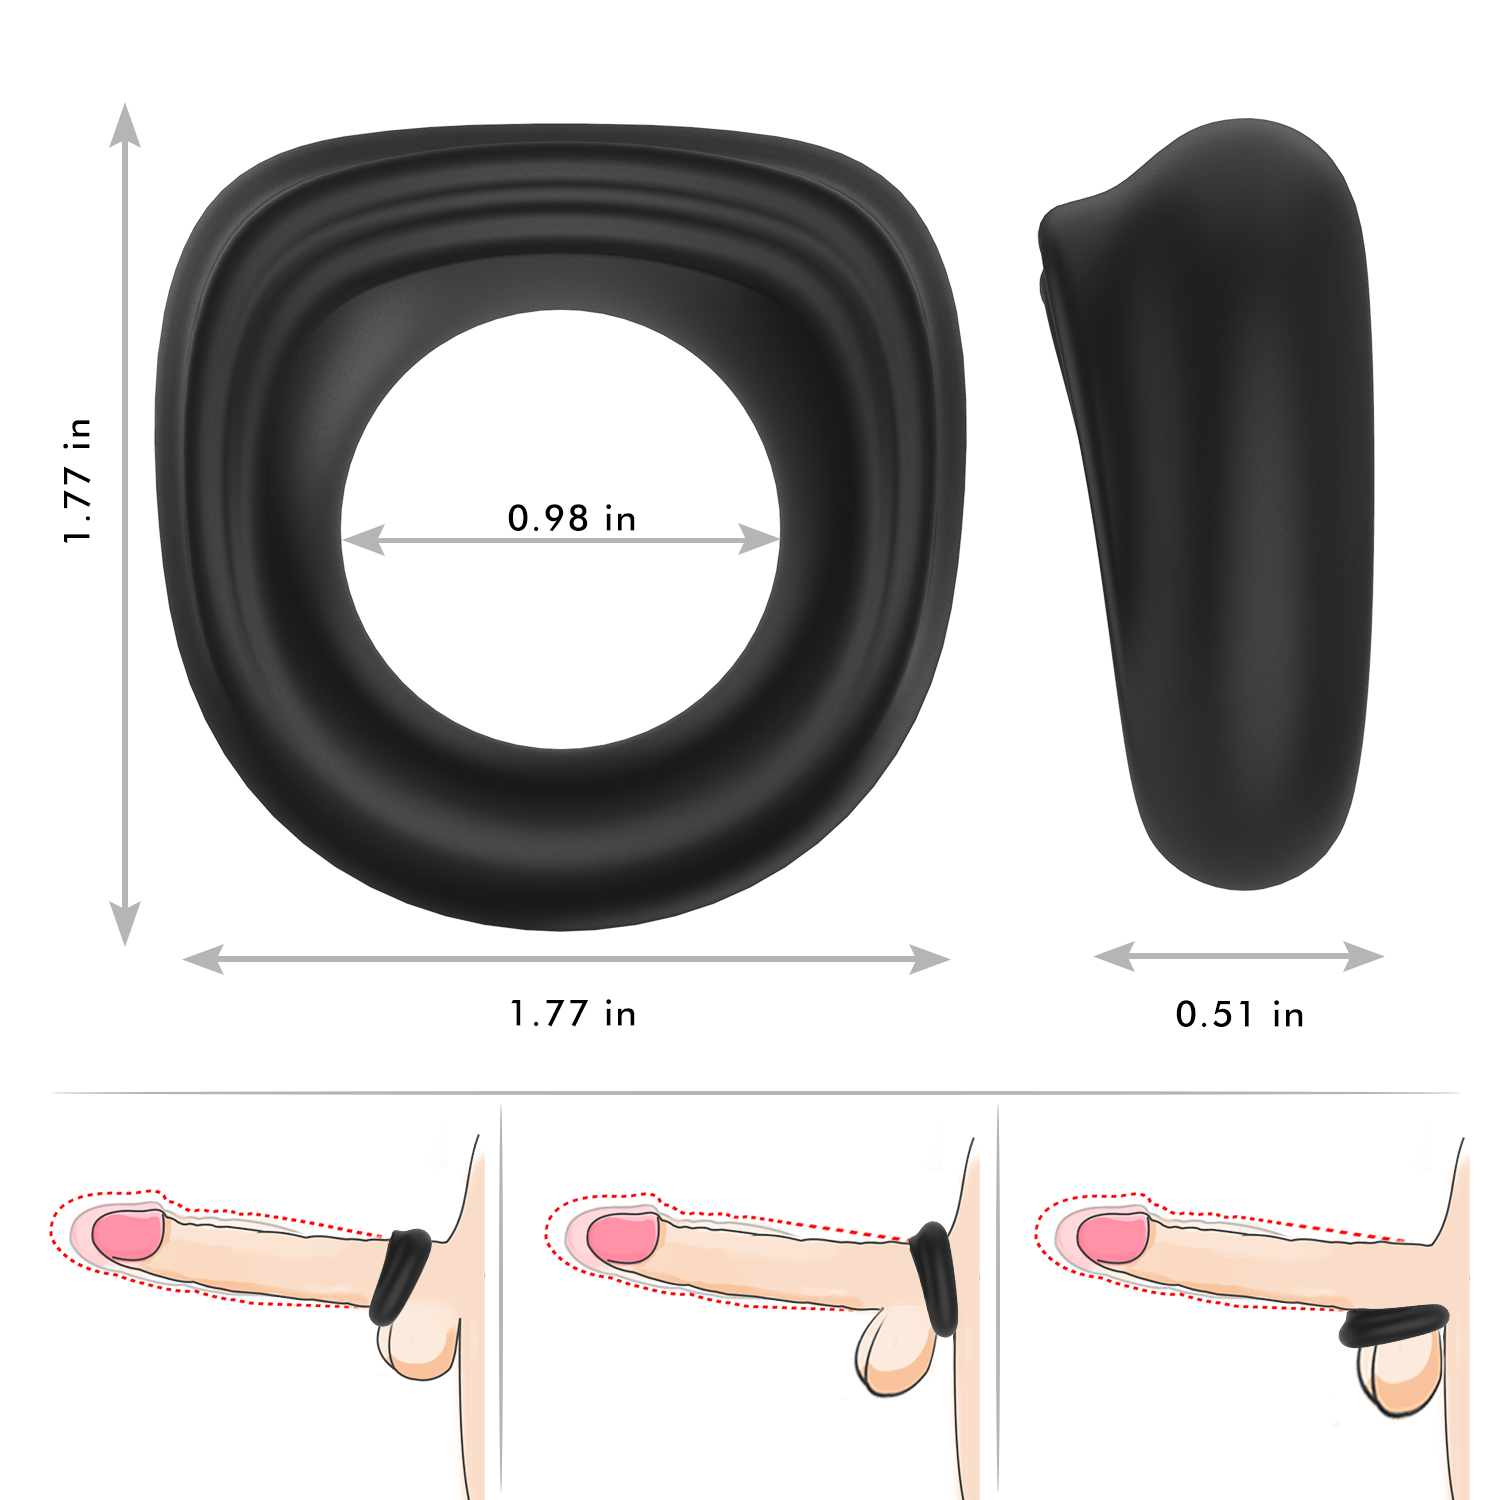 PHANXY Ultra Soft Liquid Silicone Penis Ring - PHANXY